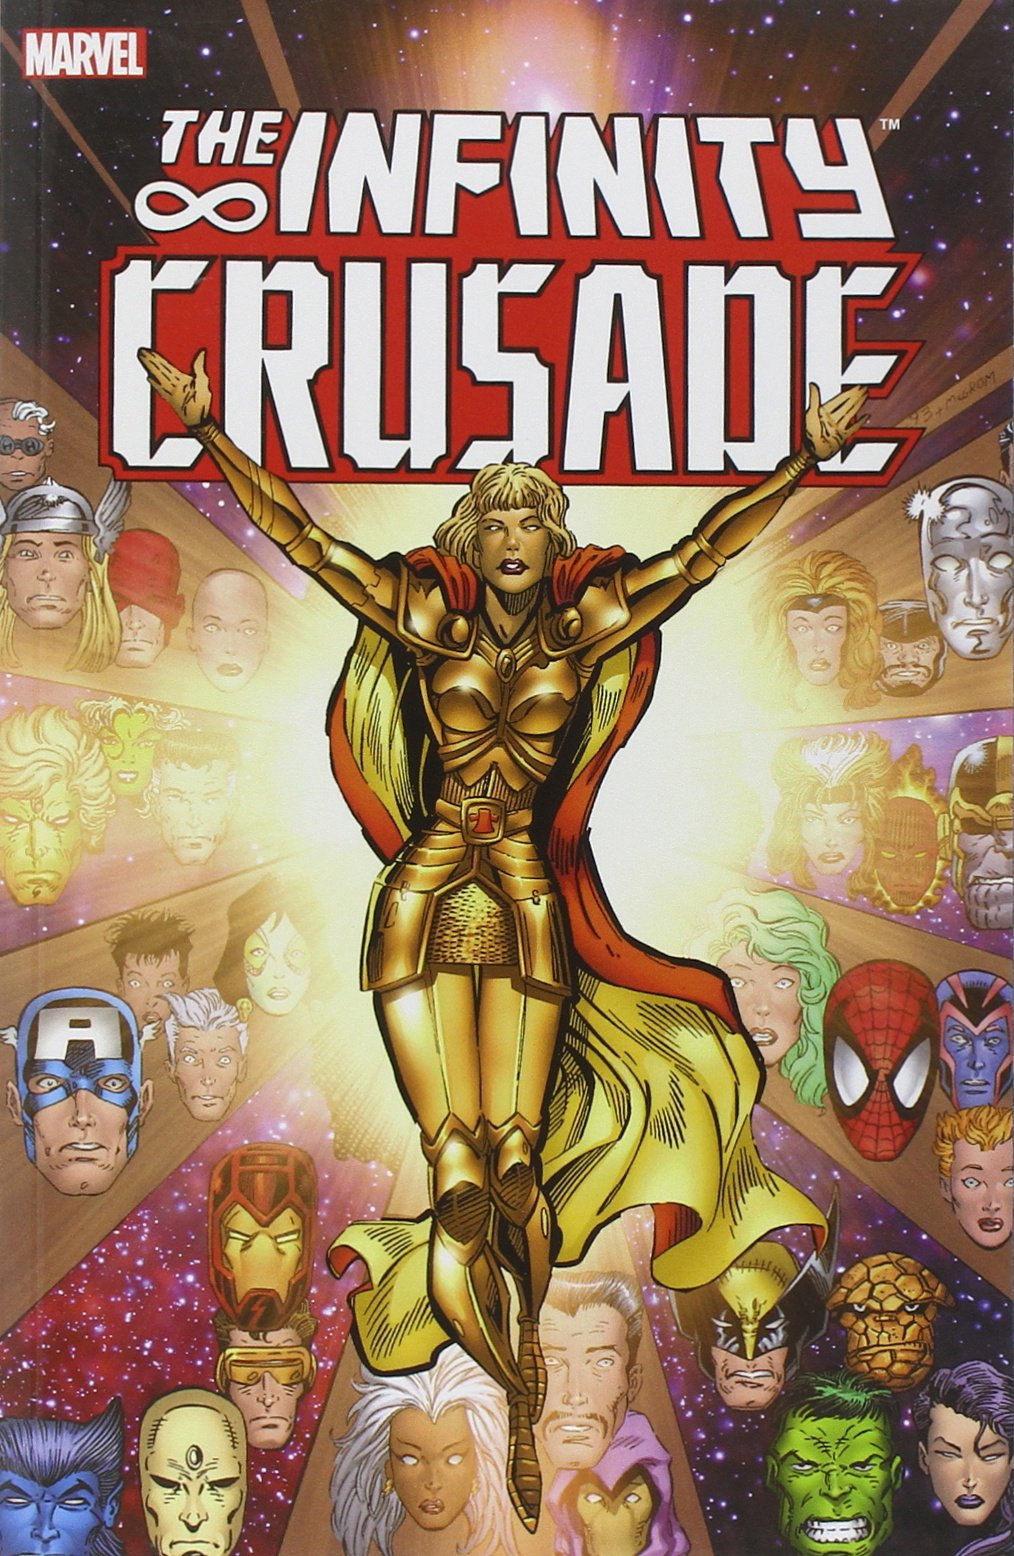 Infinity Crusade: Yes, religion gets brought up. No, not well.